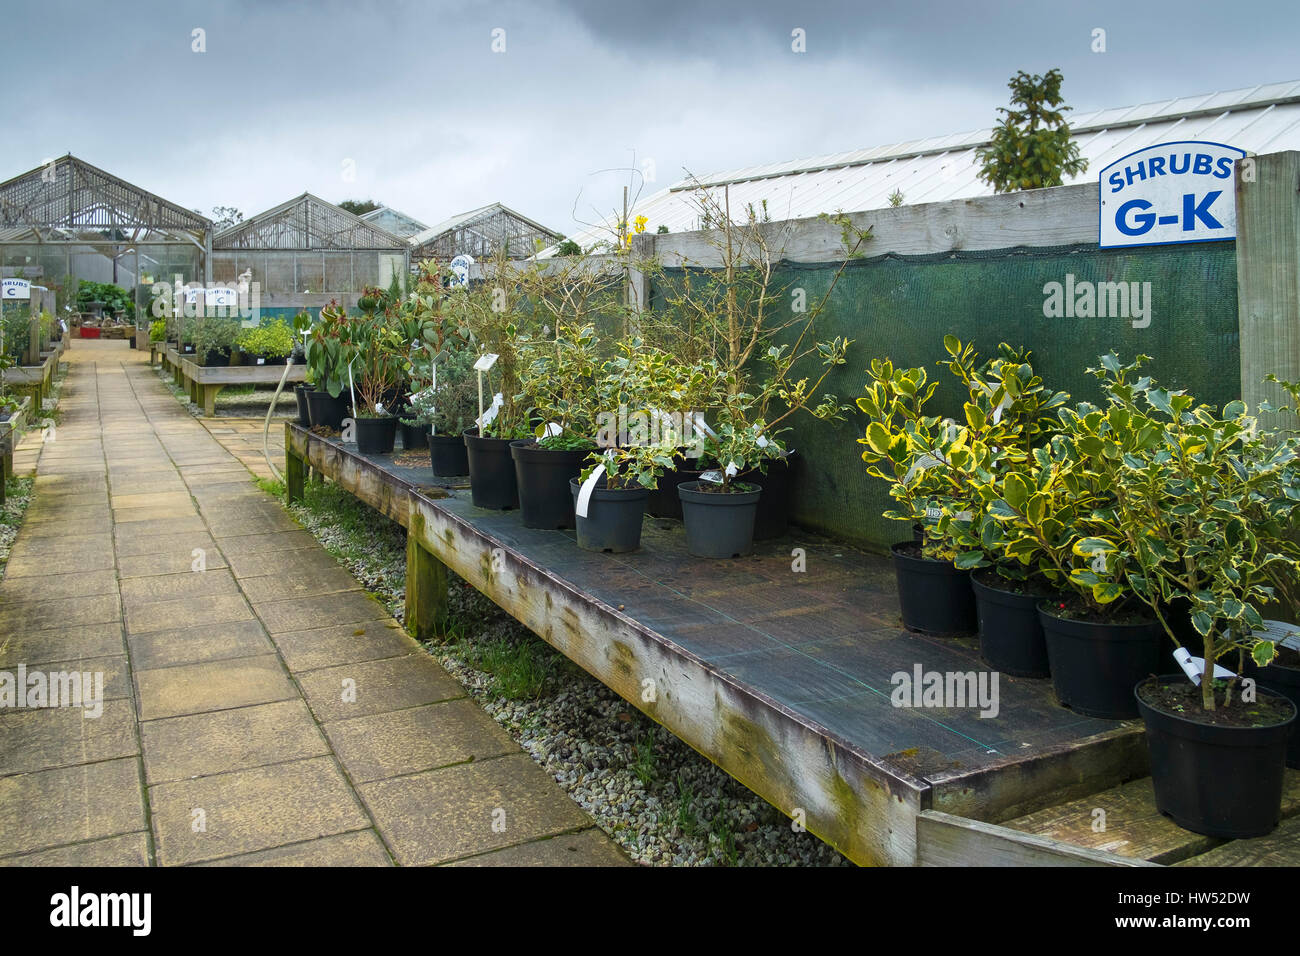 Garden Centre Plants Shrubs Sale Leisure Activity Gardening Business Display - Stock Image